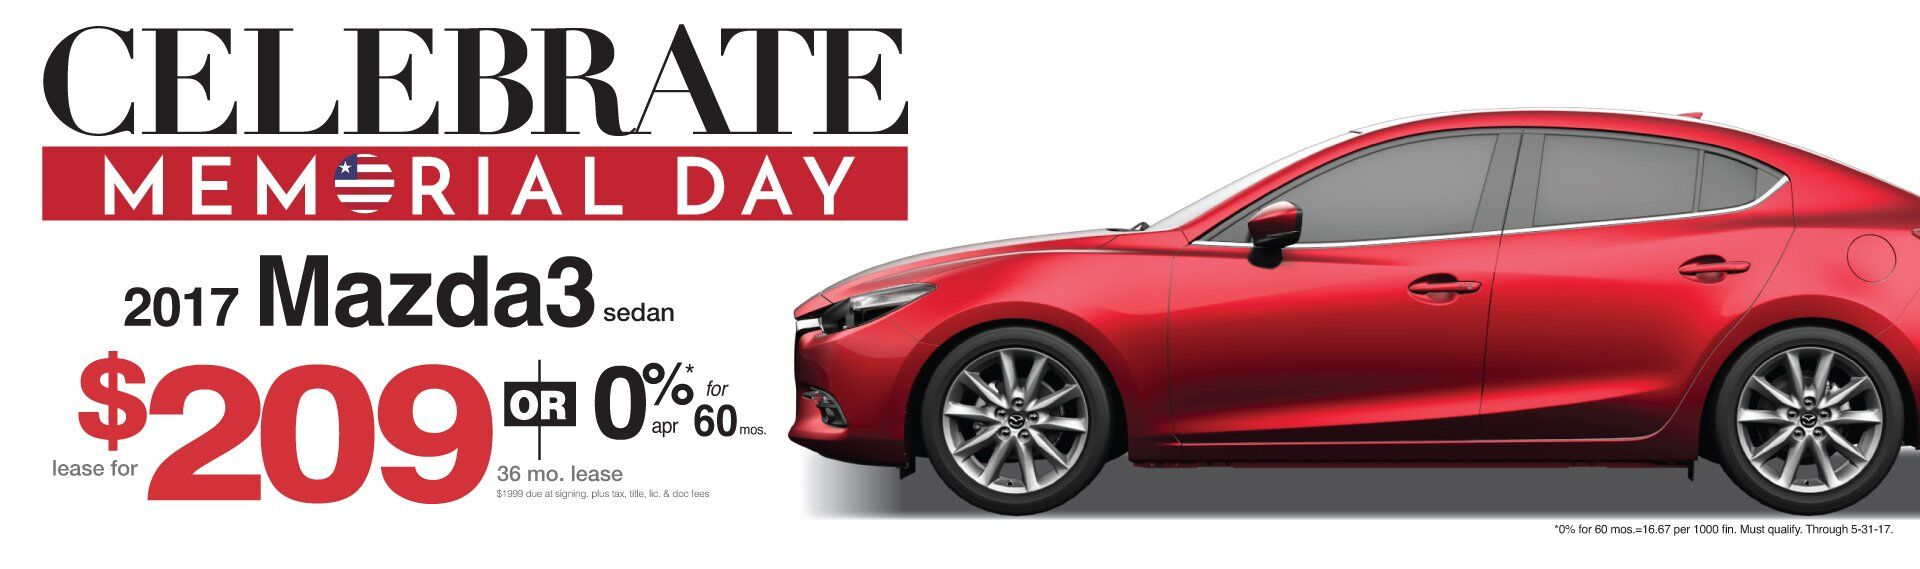 Memorial Day Savings All Mont Long on Mazda3